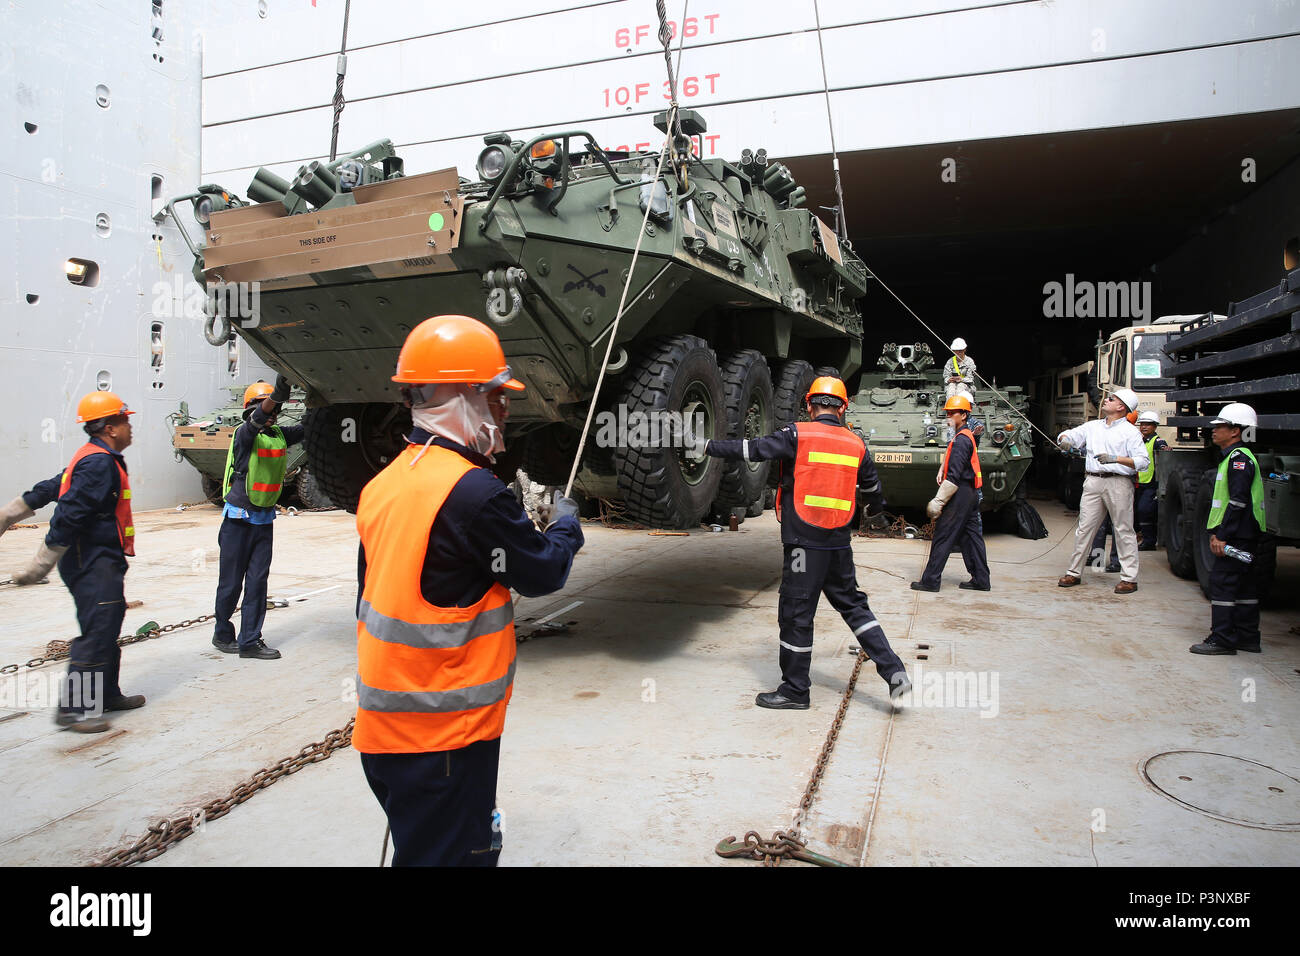 160712-N-IX266-006 SATTAHIP, Thailand—An M1126 Stryker is lowered into general purpose, heavy lift ship MV OCEAN GLORY during a backload of equipment at Chuk Samet, here, from exercise Hanuman Guardian, July 12. Military Sealift Command's contracted voyage-charter MV OCEAN GLORY recently conducted a backload of about 250 items in Thailand as part of U.S. Army Pacific's mobility operation PACIFIC PATHWAYS 16-2. (U.S. Navy photo by Grady T. Fontana/Released) - Stock Image